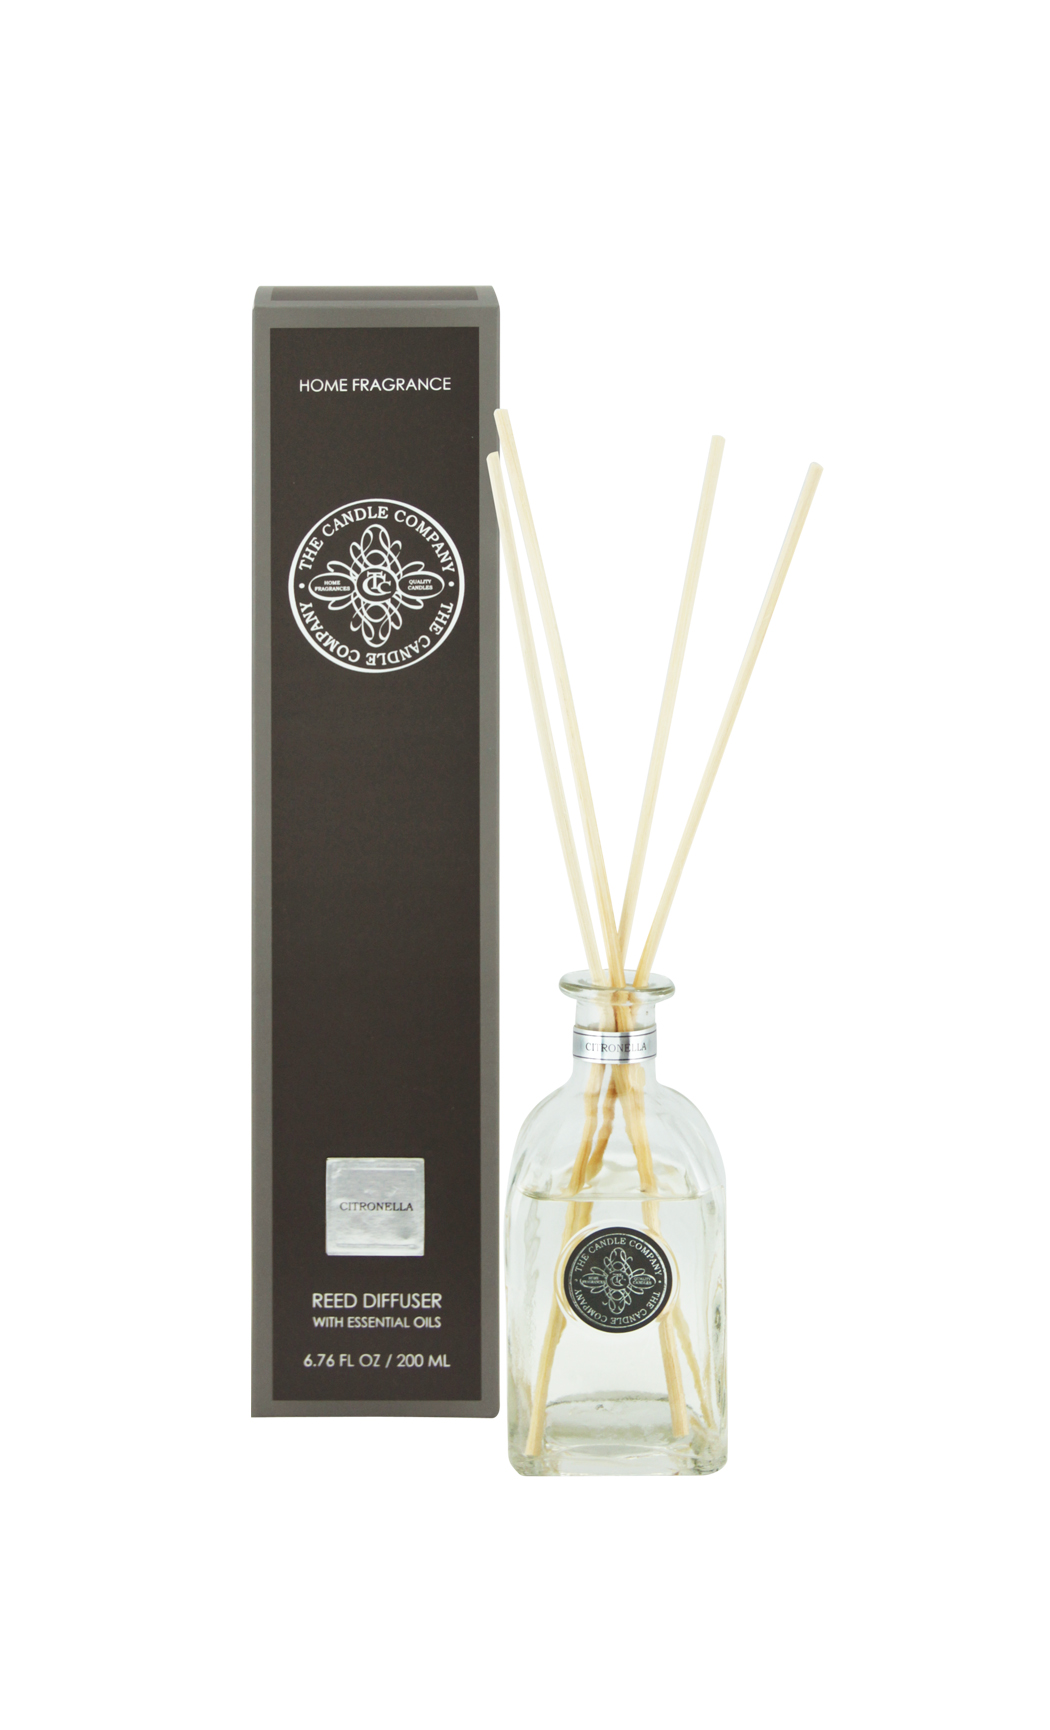 Scented Reed Diffuser Sticks and Citrus Fragrance Oil - Aromatic Diffusers by The Candle Co. - Shop Online in India